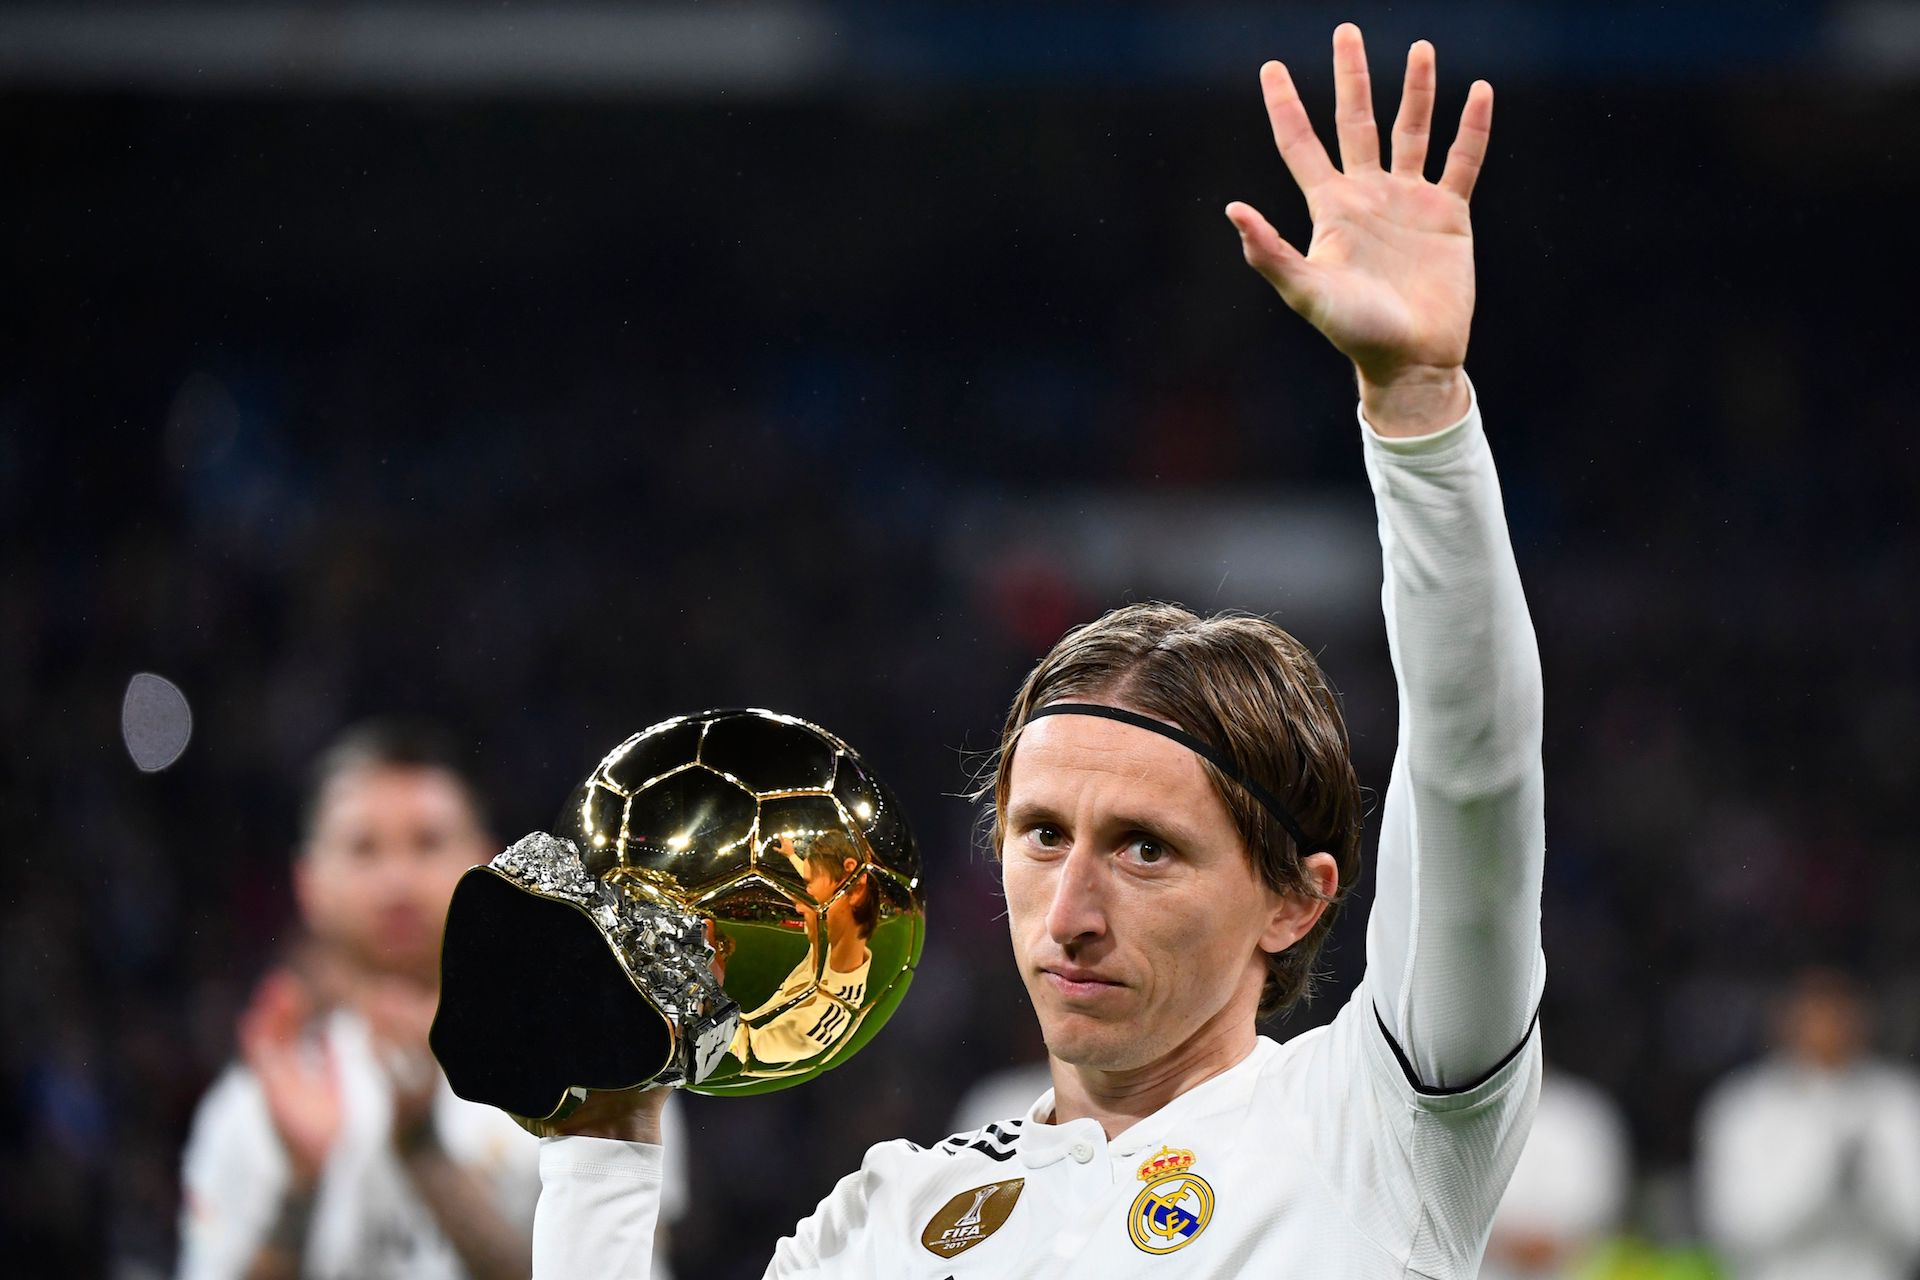 https://images.performgroup.com/di/library/GOAL/7d/d/luka-modric-real-madrid-rayo-vallecano-laliga_1vc2xwd3bymns1w9q4u7xmck7m.jpg